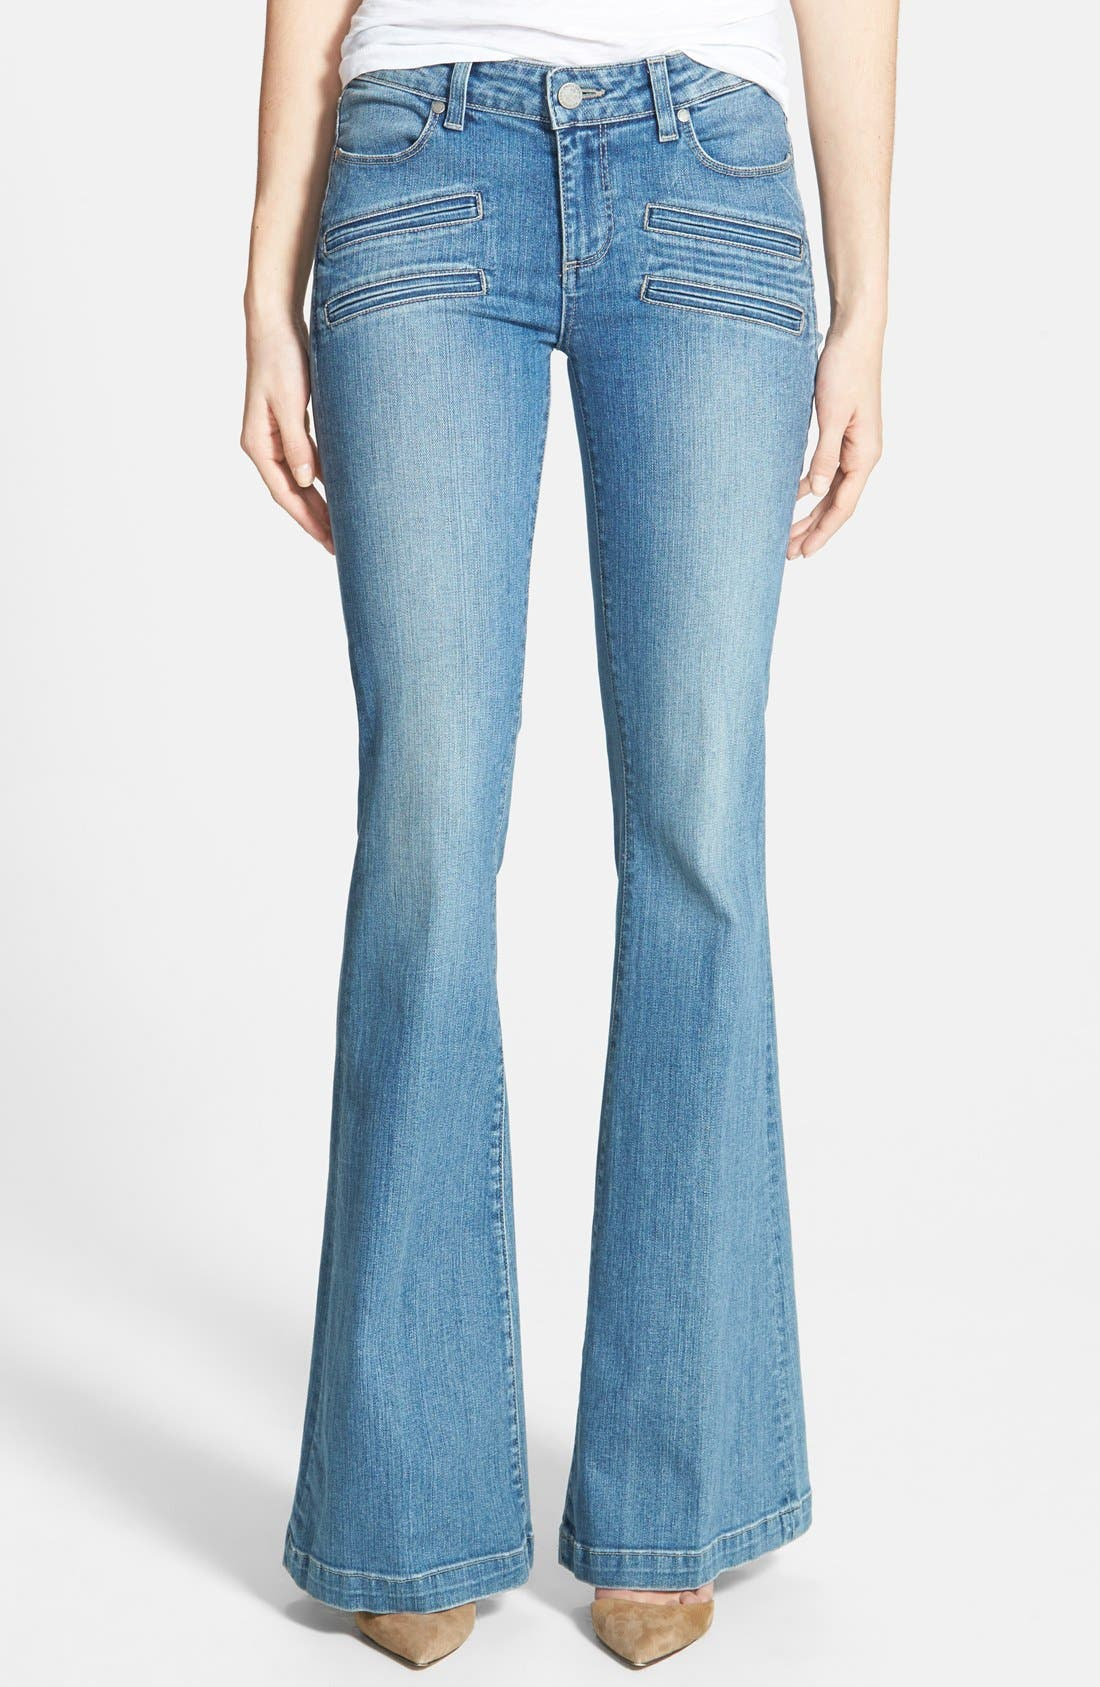 Alternate Image 1 Selected - Paige Denim 'Fionna' Flare Jeans (Paulina No Whiskers)